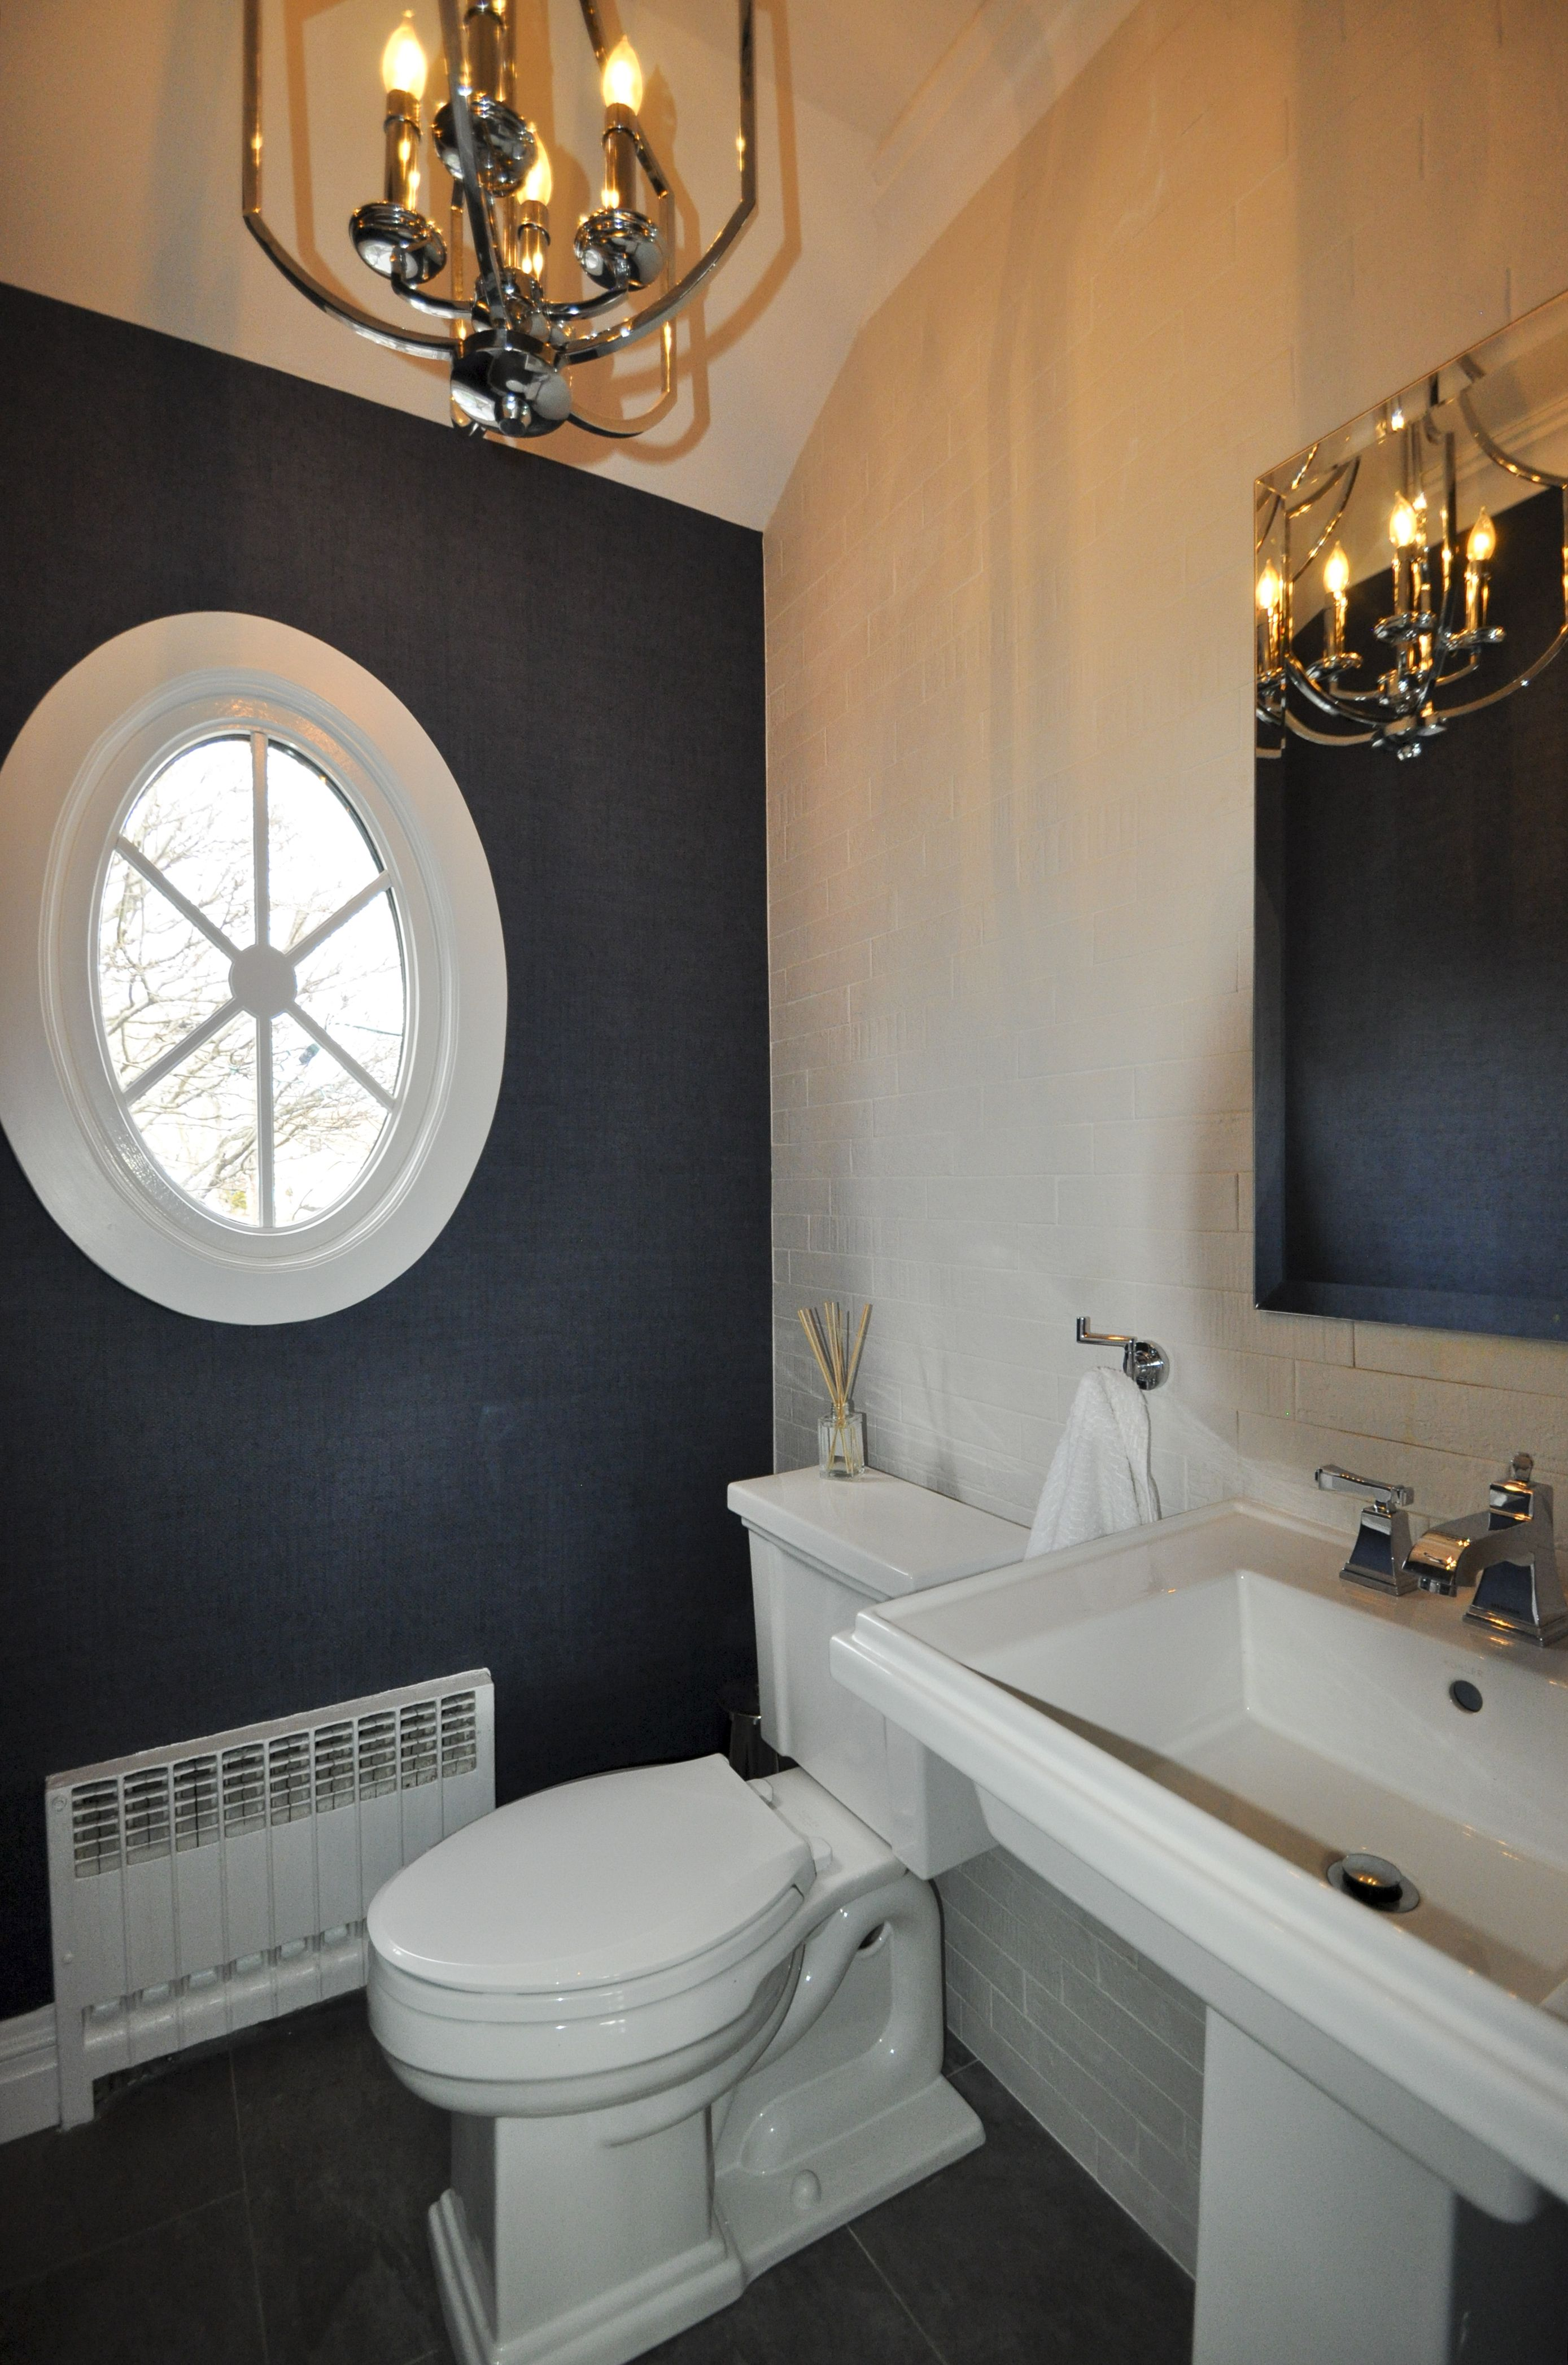 1 2 Bath With Class With Speakman Fixtures Tile Accent Wall Dark Blue Vinyl Wall Paper And Chrome Fixt Bathroom Design Blue Accent Walls Bathroom Renovations